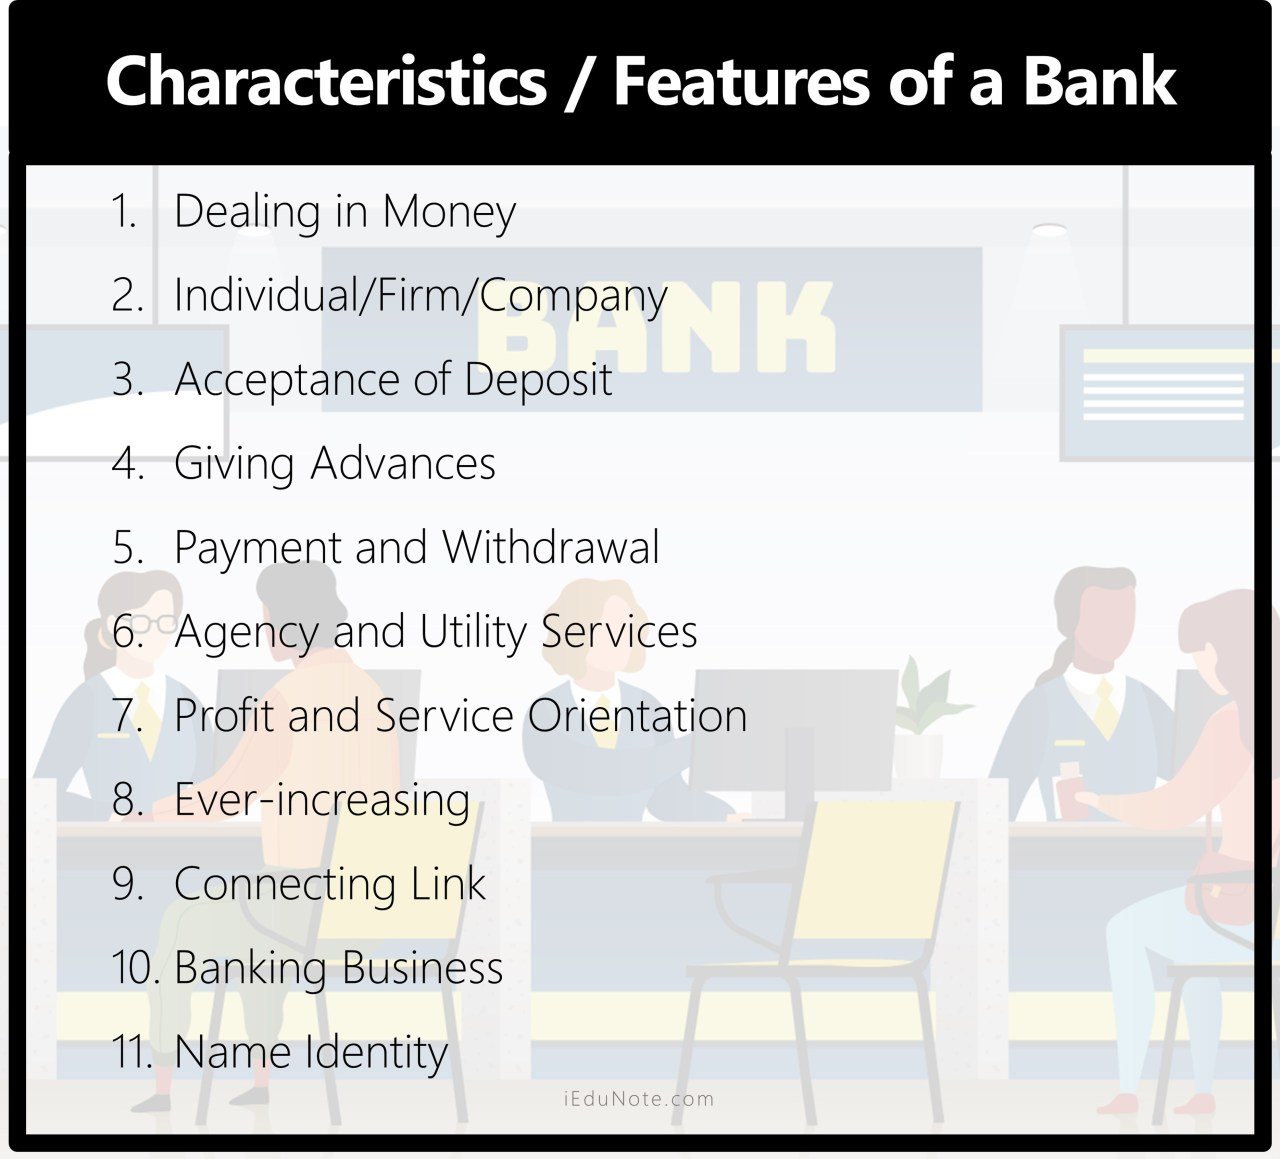 characteristics or features of a bank are;